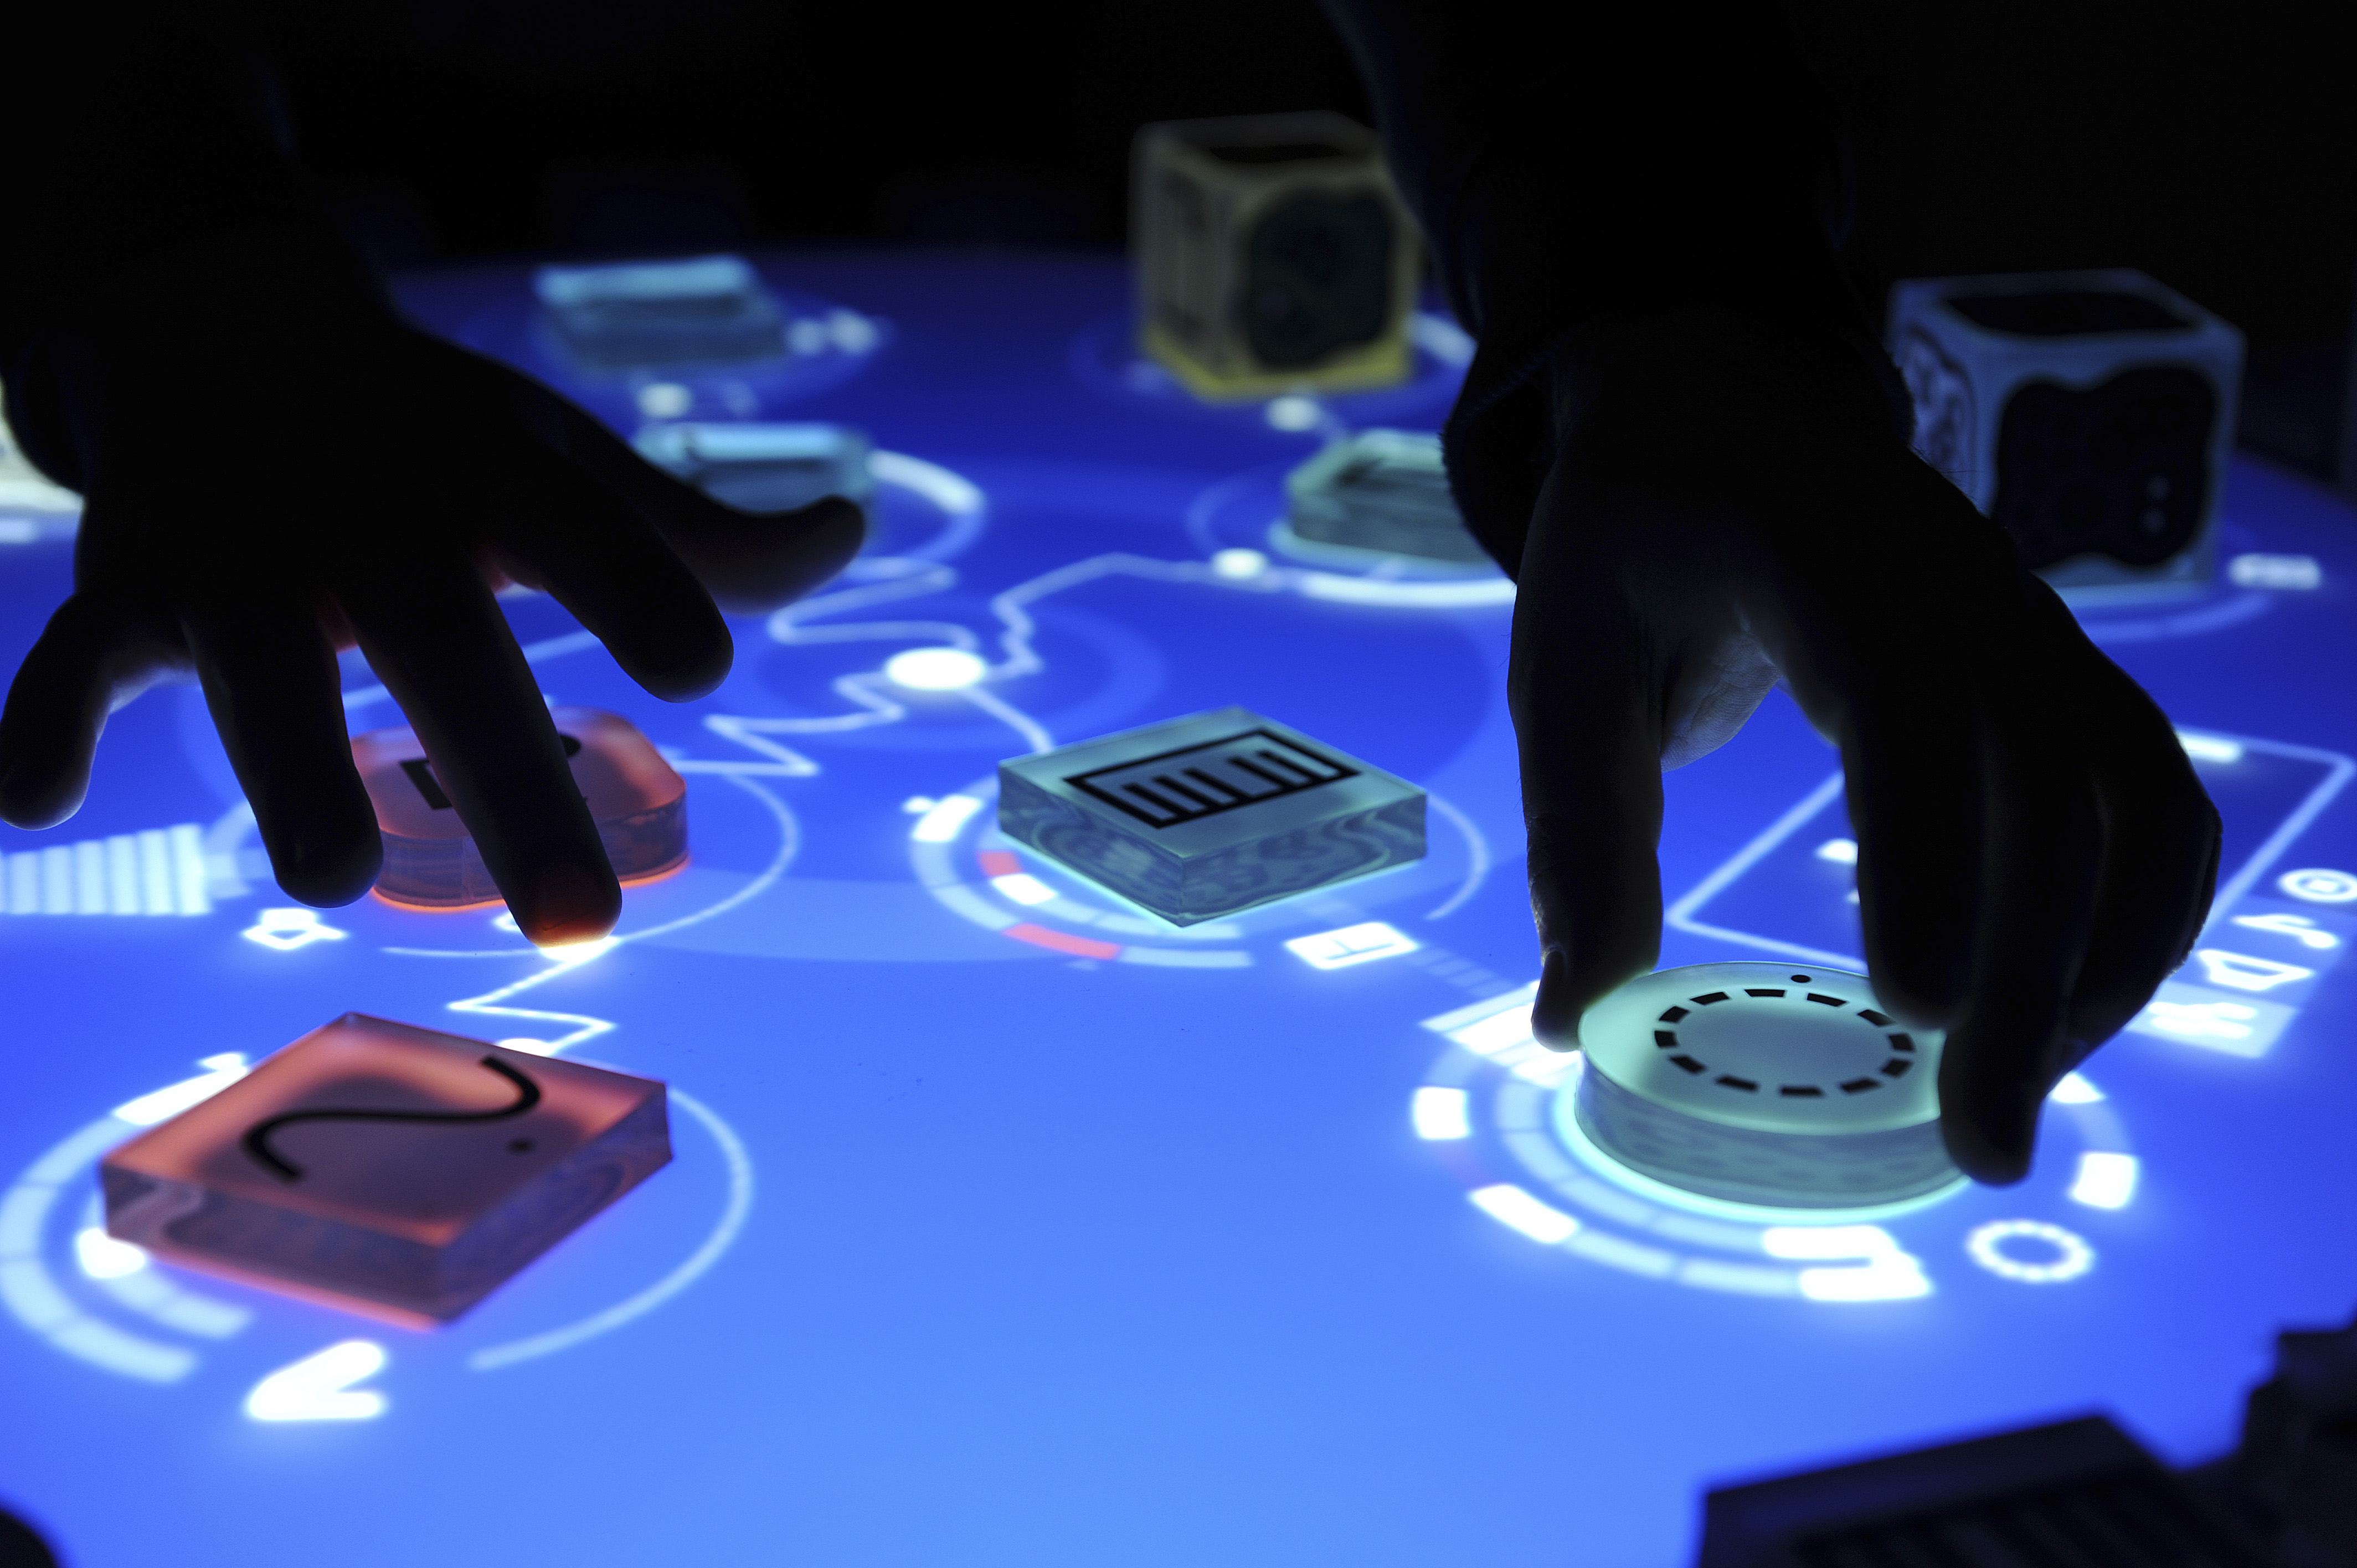 A Reactable in use playing music